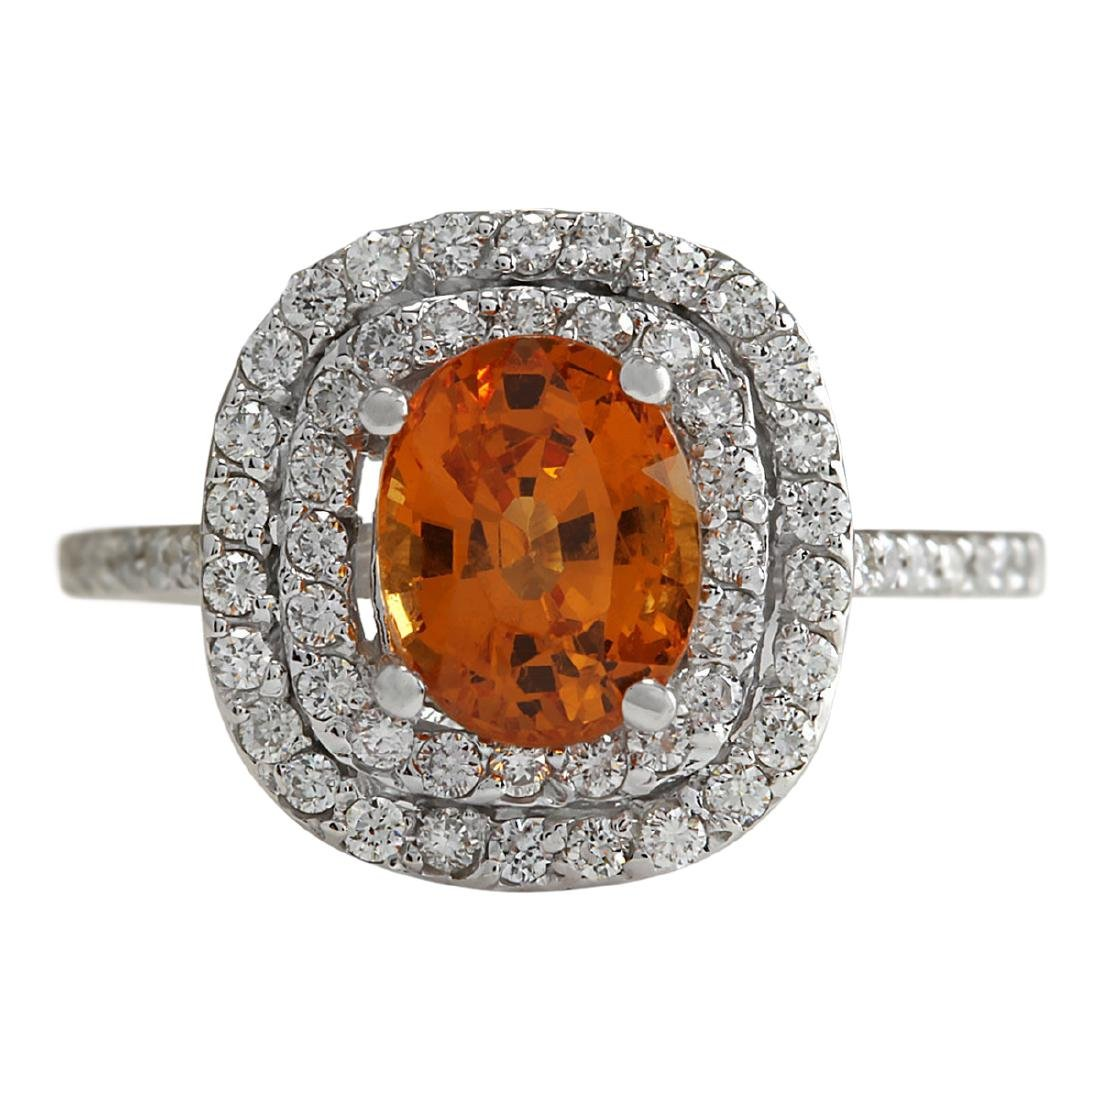 3.13 CTW Natural Orange Sapphire And Diamond Ring In18K